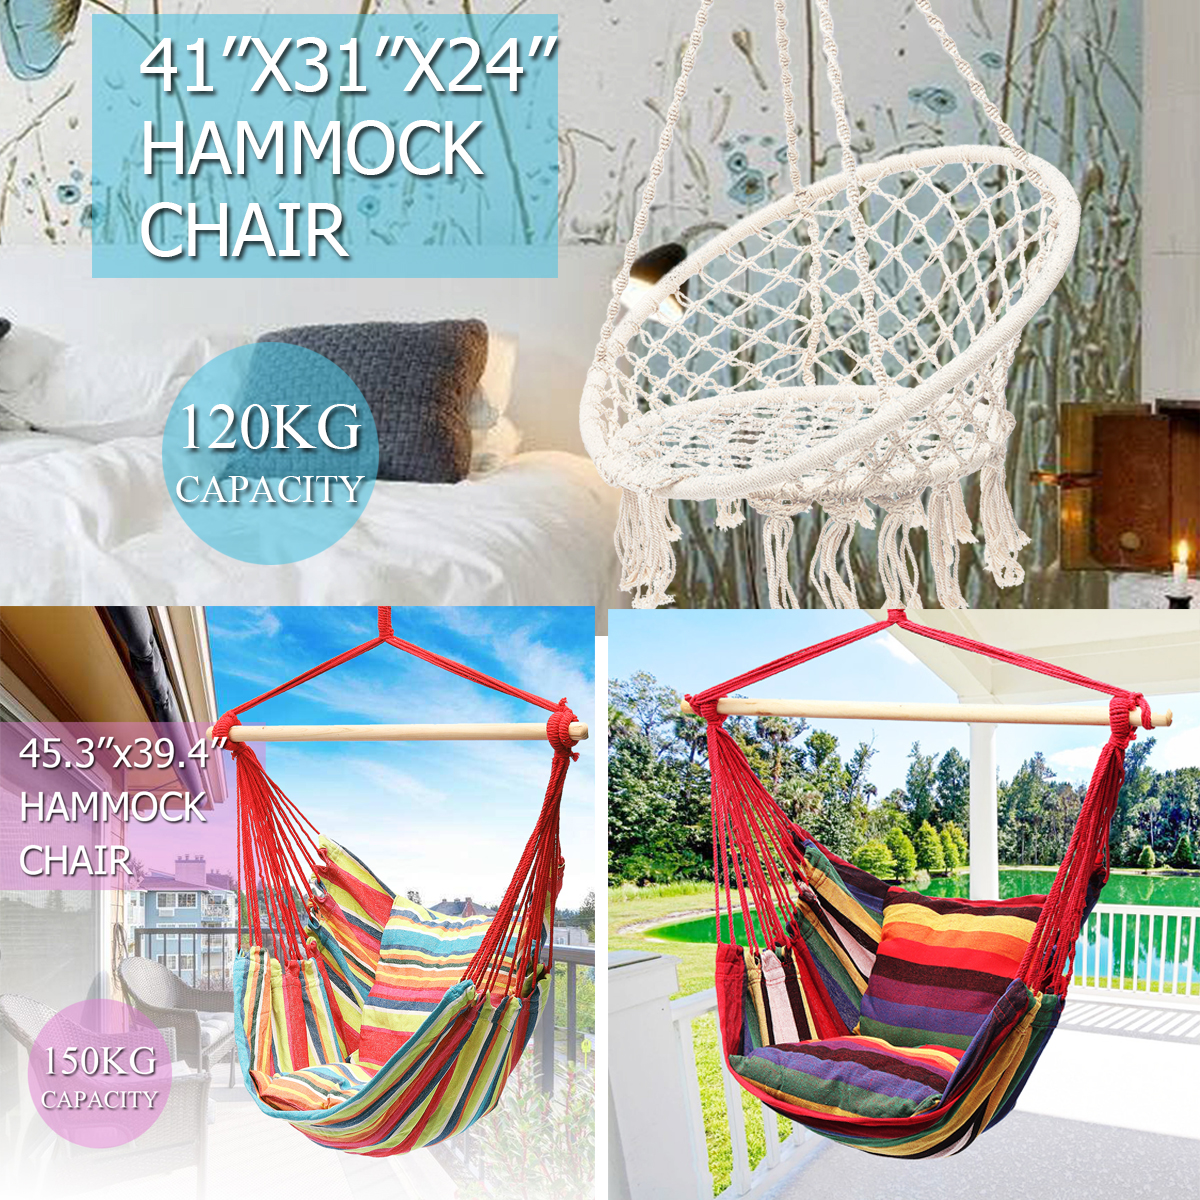 Nordic Round Hanging Hammock Chair Fashion Dormitory Bedroom Swinging Chair Outdoor Furniture Indoor Camping Cottage Garden